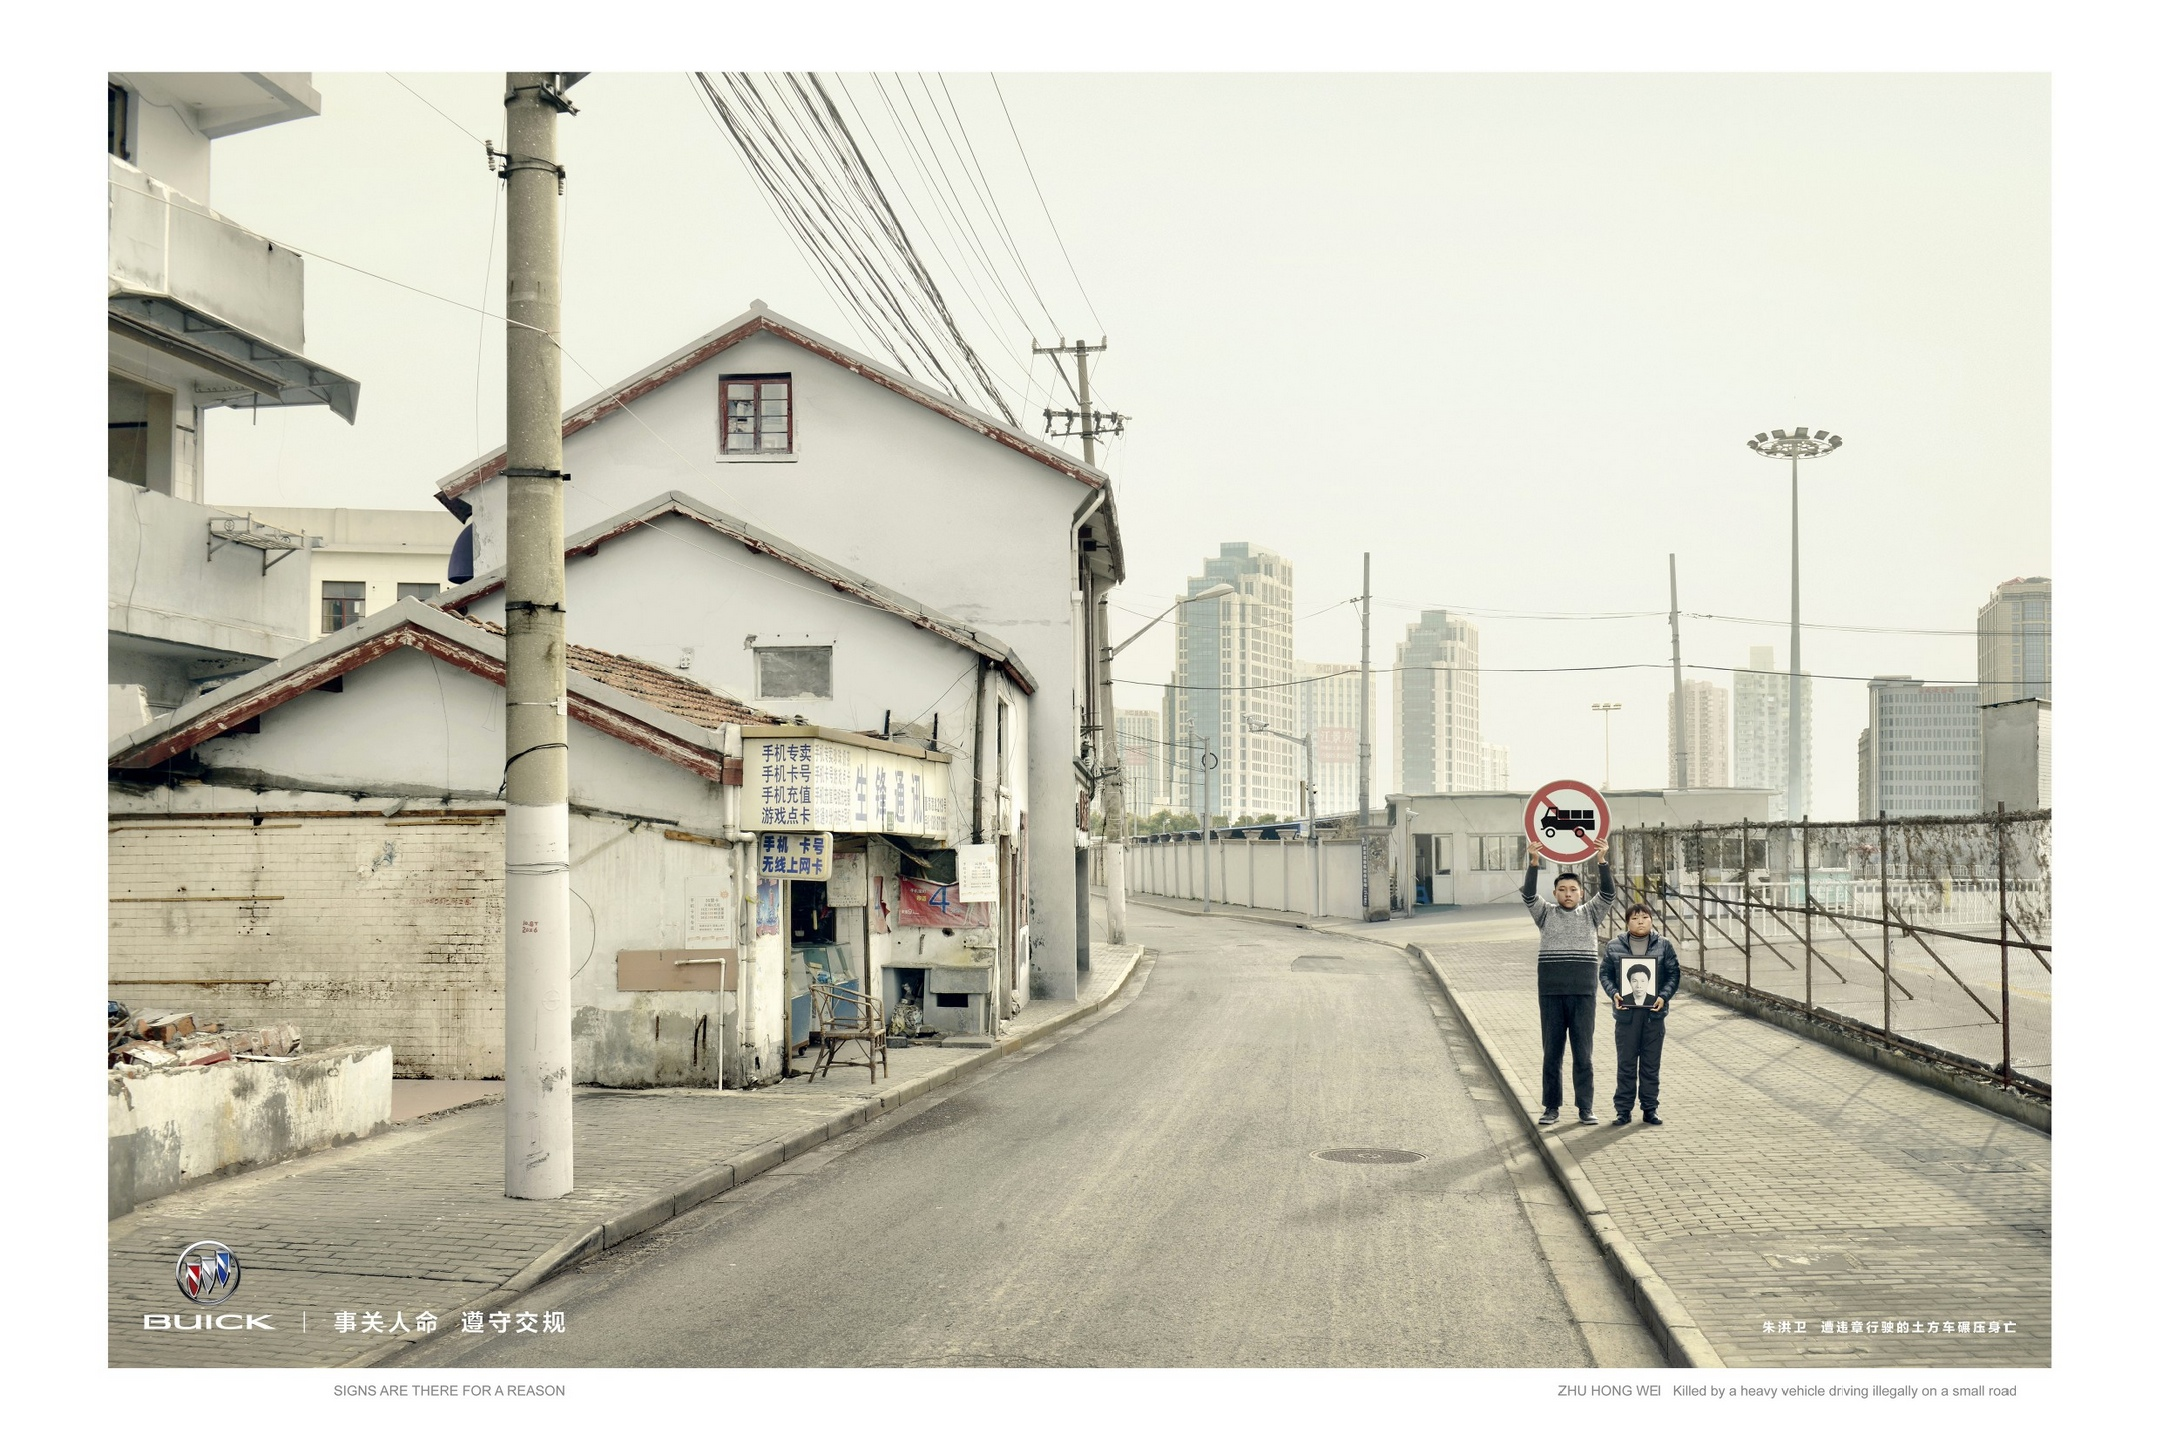 buick-road-safety-human-traffic-signs-best-print-ads-2015-lowe-china-gunn-report-5